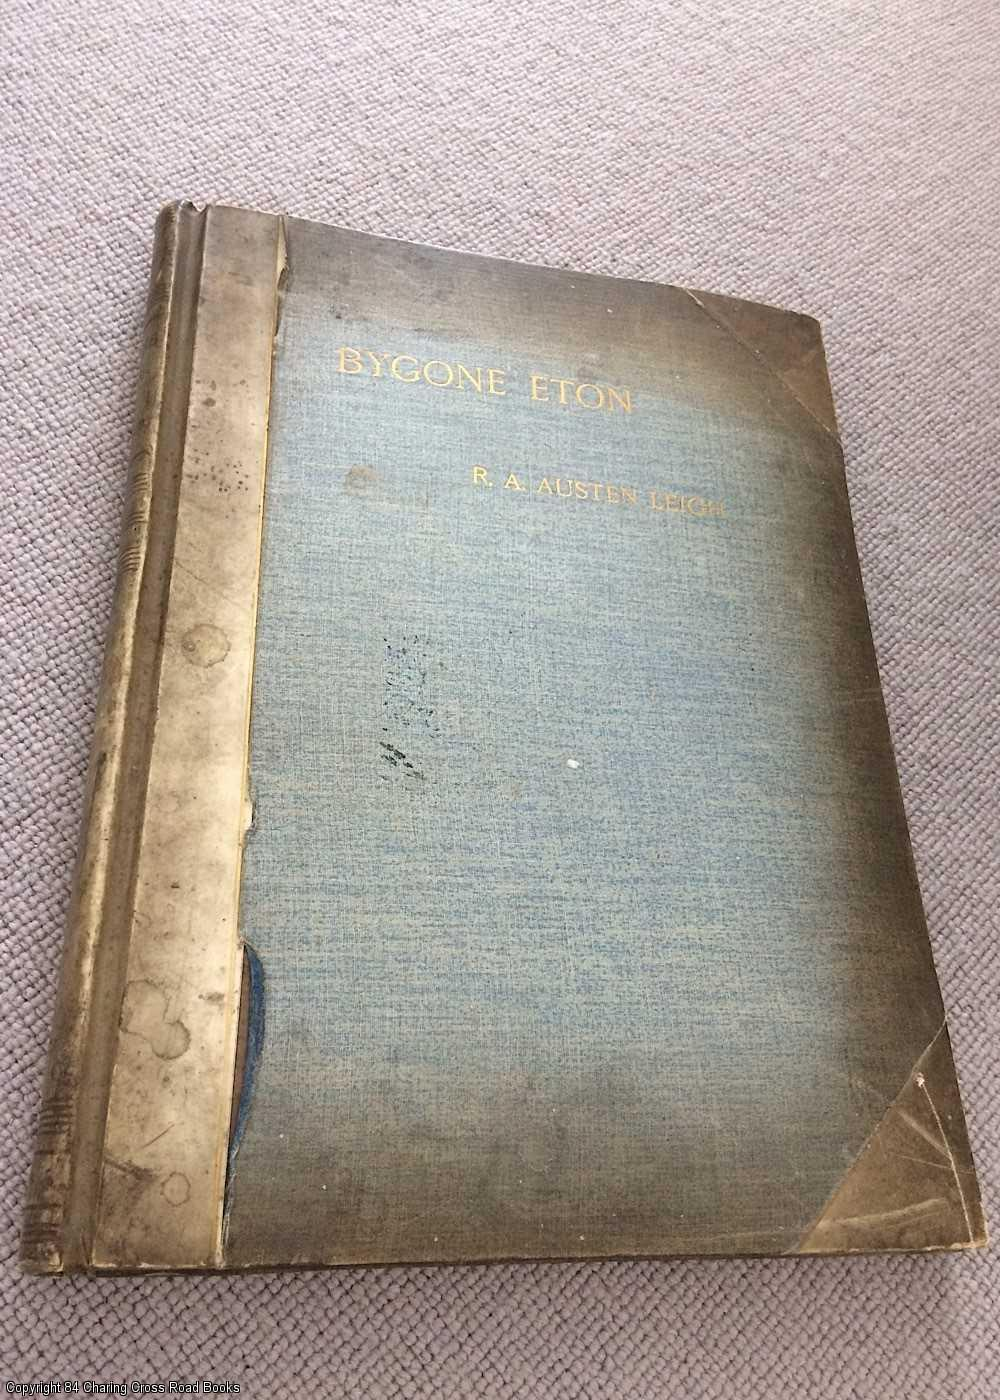 AUSTEN-LEIGH, R. A. - Bygone Eton: a collection of permanent photographs